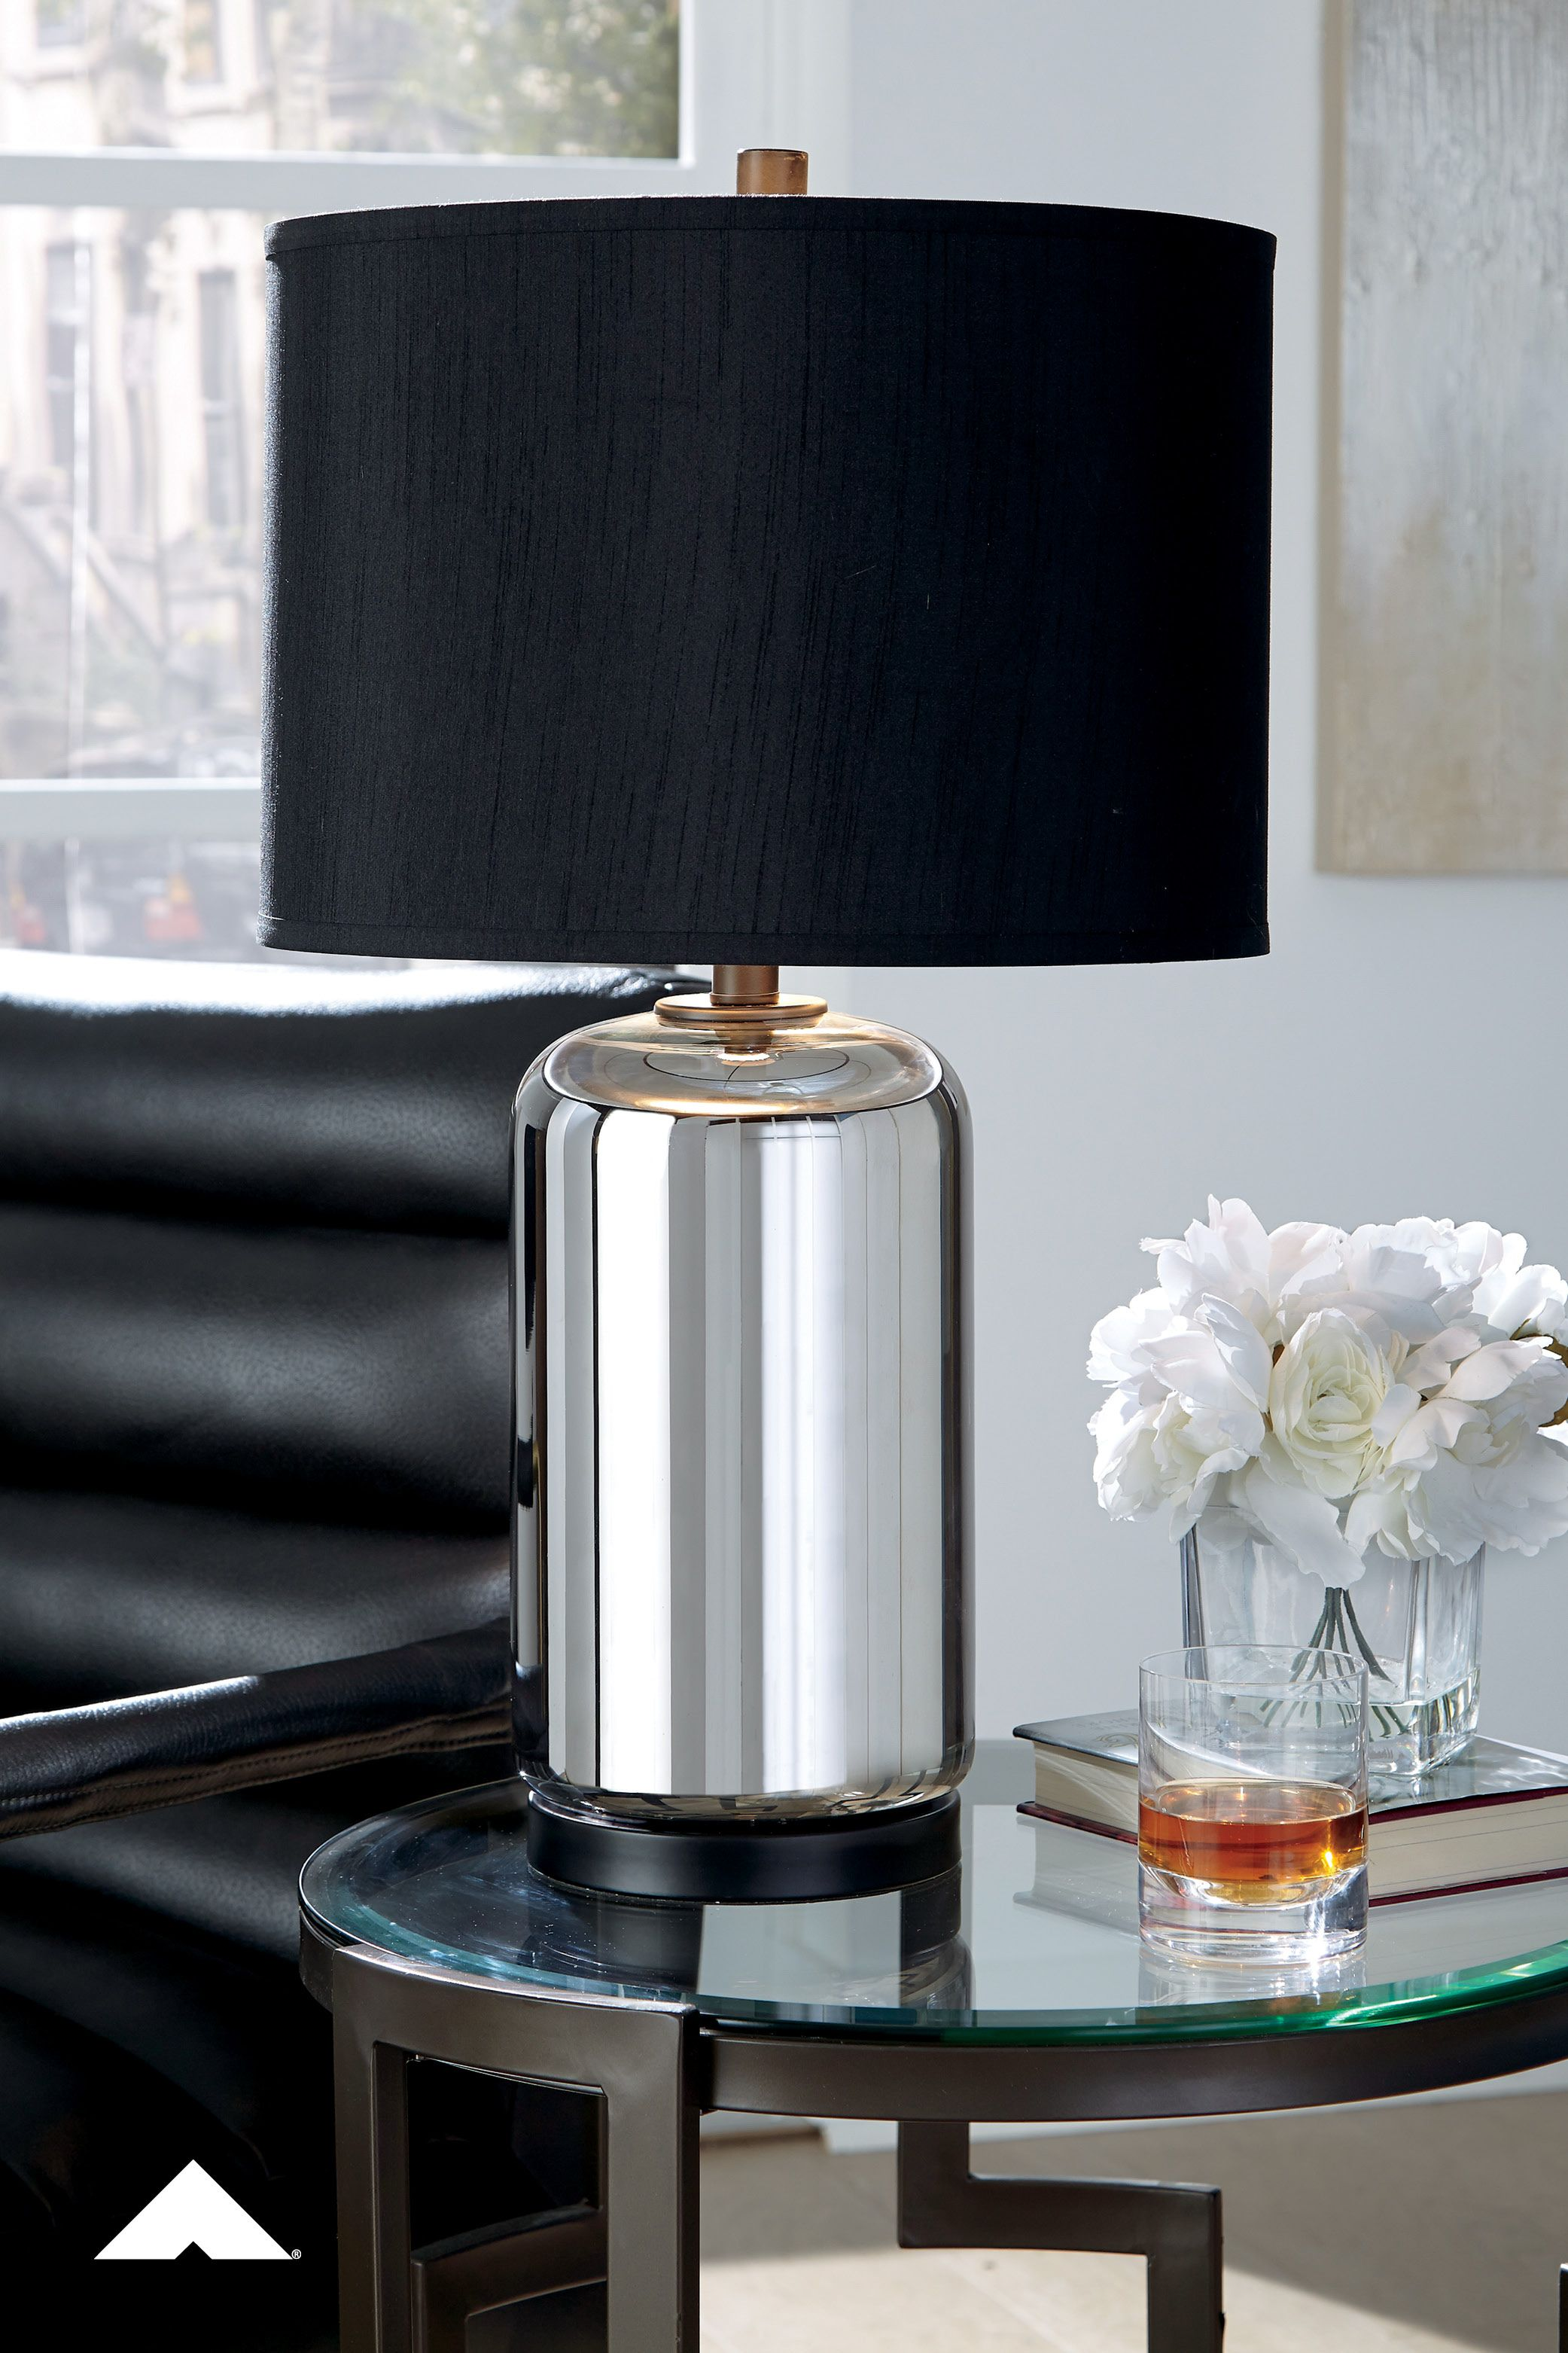 Marinda Silver Finish Glass Table Lamp By Ashley Furniture Crafted With Luminous Mercury Glass This Table Lamp In 2020 Table Lamp Sets Silver Table Lamps Lamp Sets